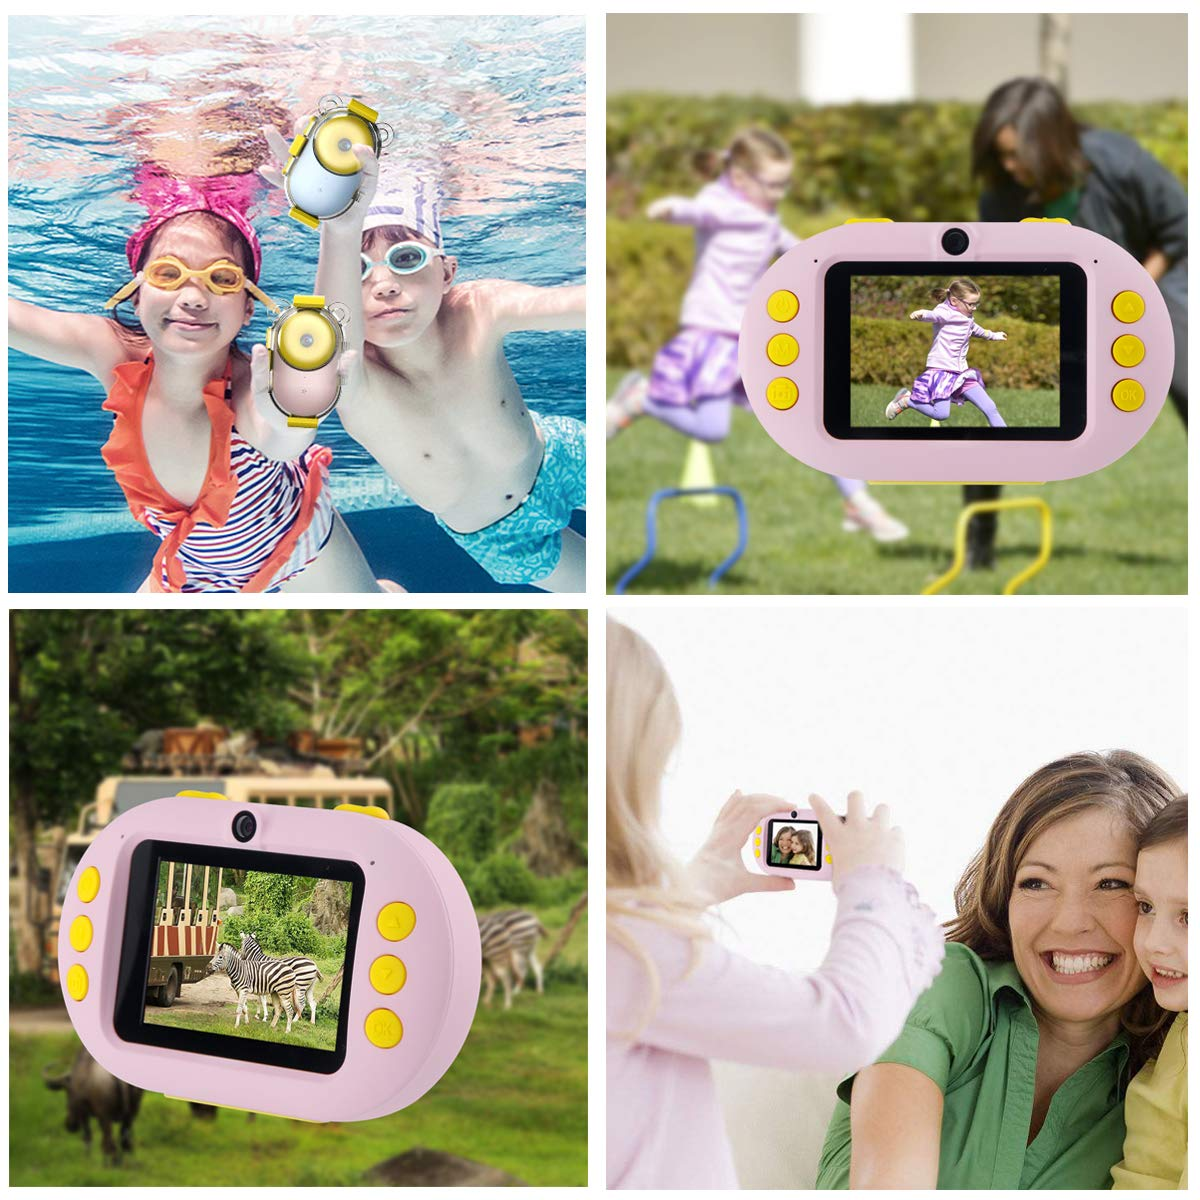 Kids Camera, OPOLEMIN Kids Waterproof Camera Kids Video Camera with Sound Playback Underwater Digital Camera Camcorderfor Kids with 16G Memory Card for Children's Day Birthday Trip Beach Swimming by OPOLEMIN (Image #5)